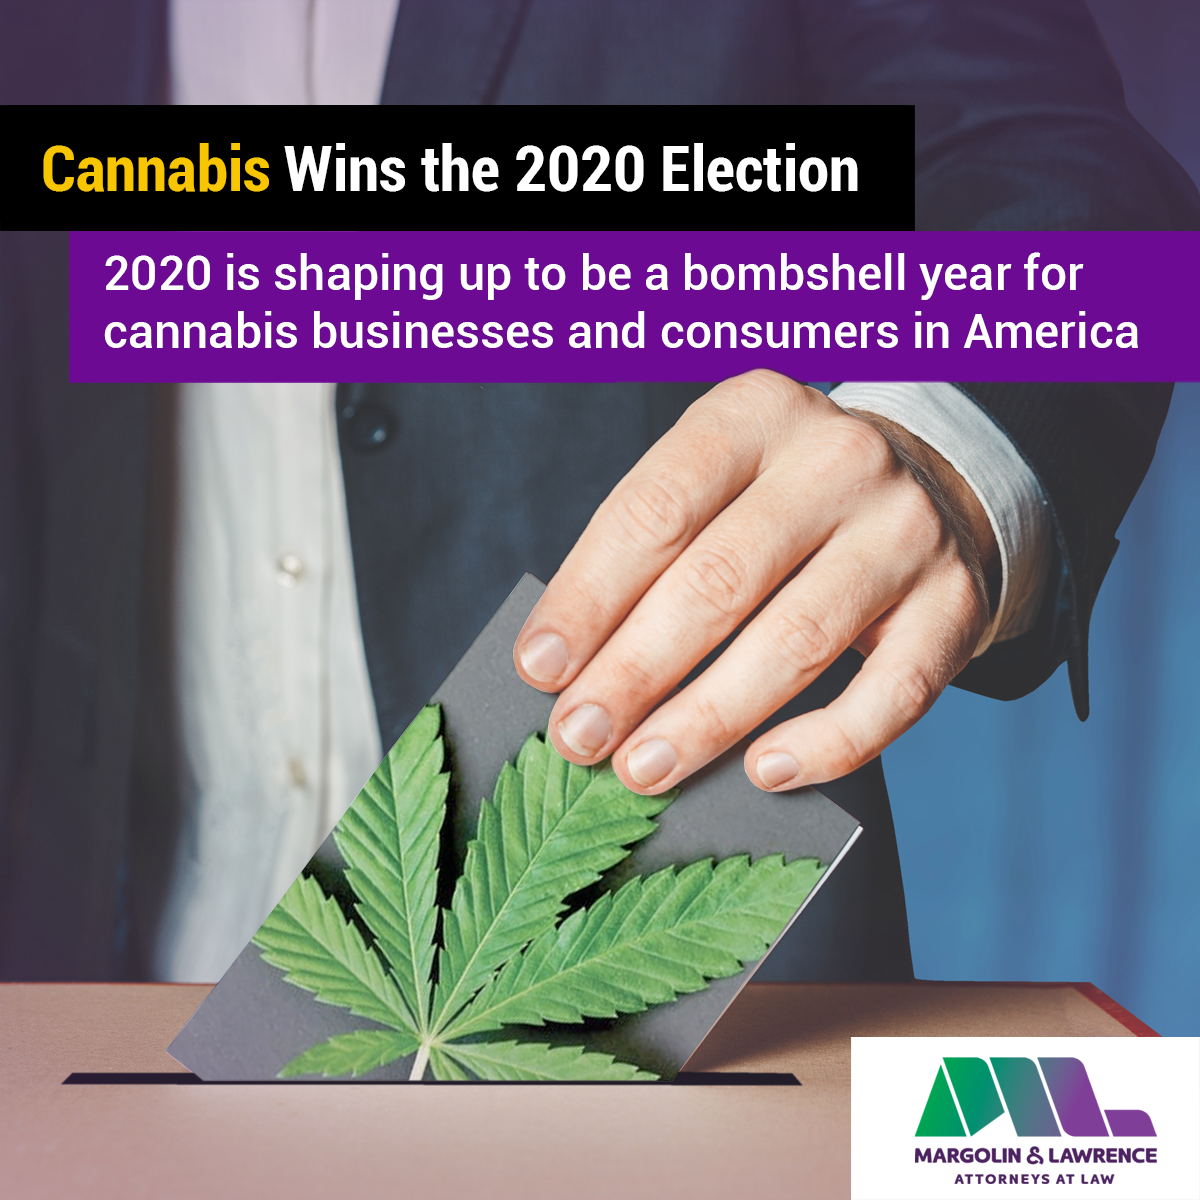 Cannabis wins the 2020 election